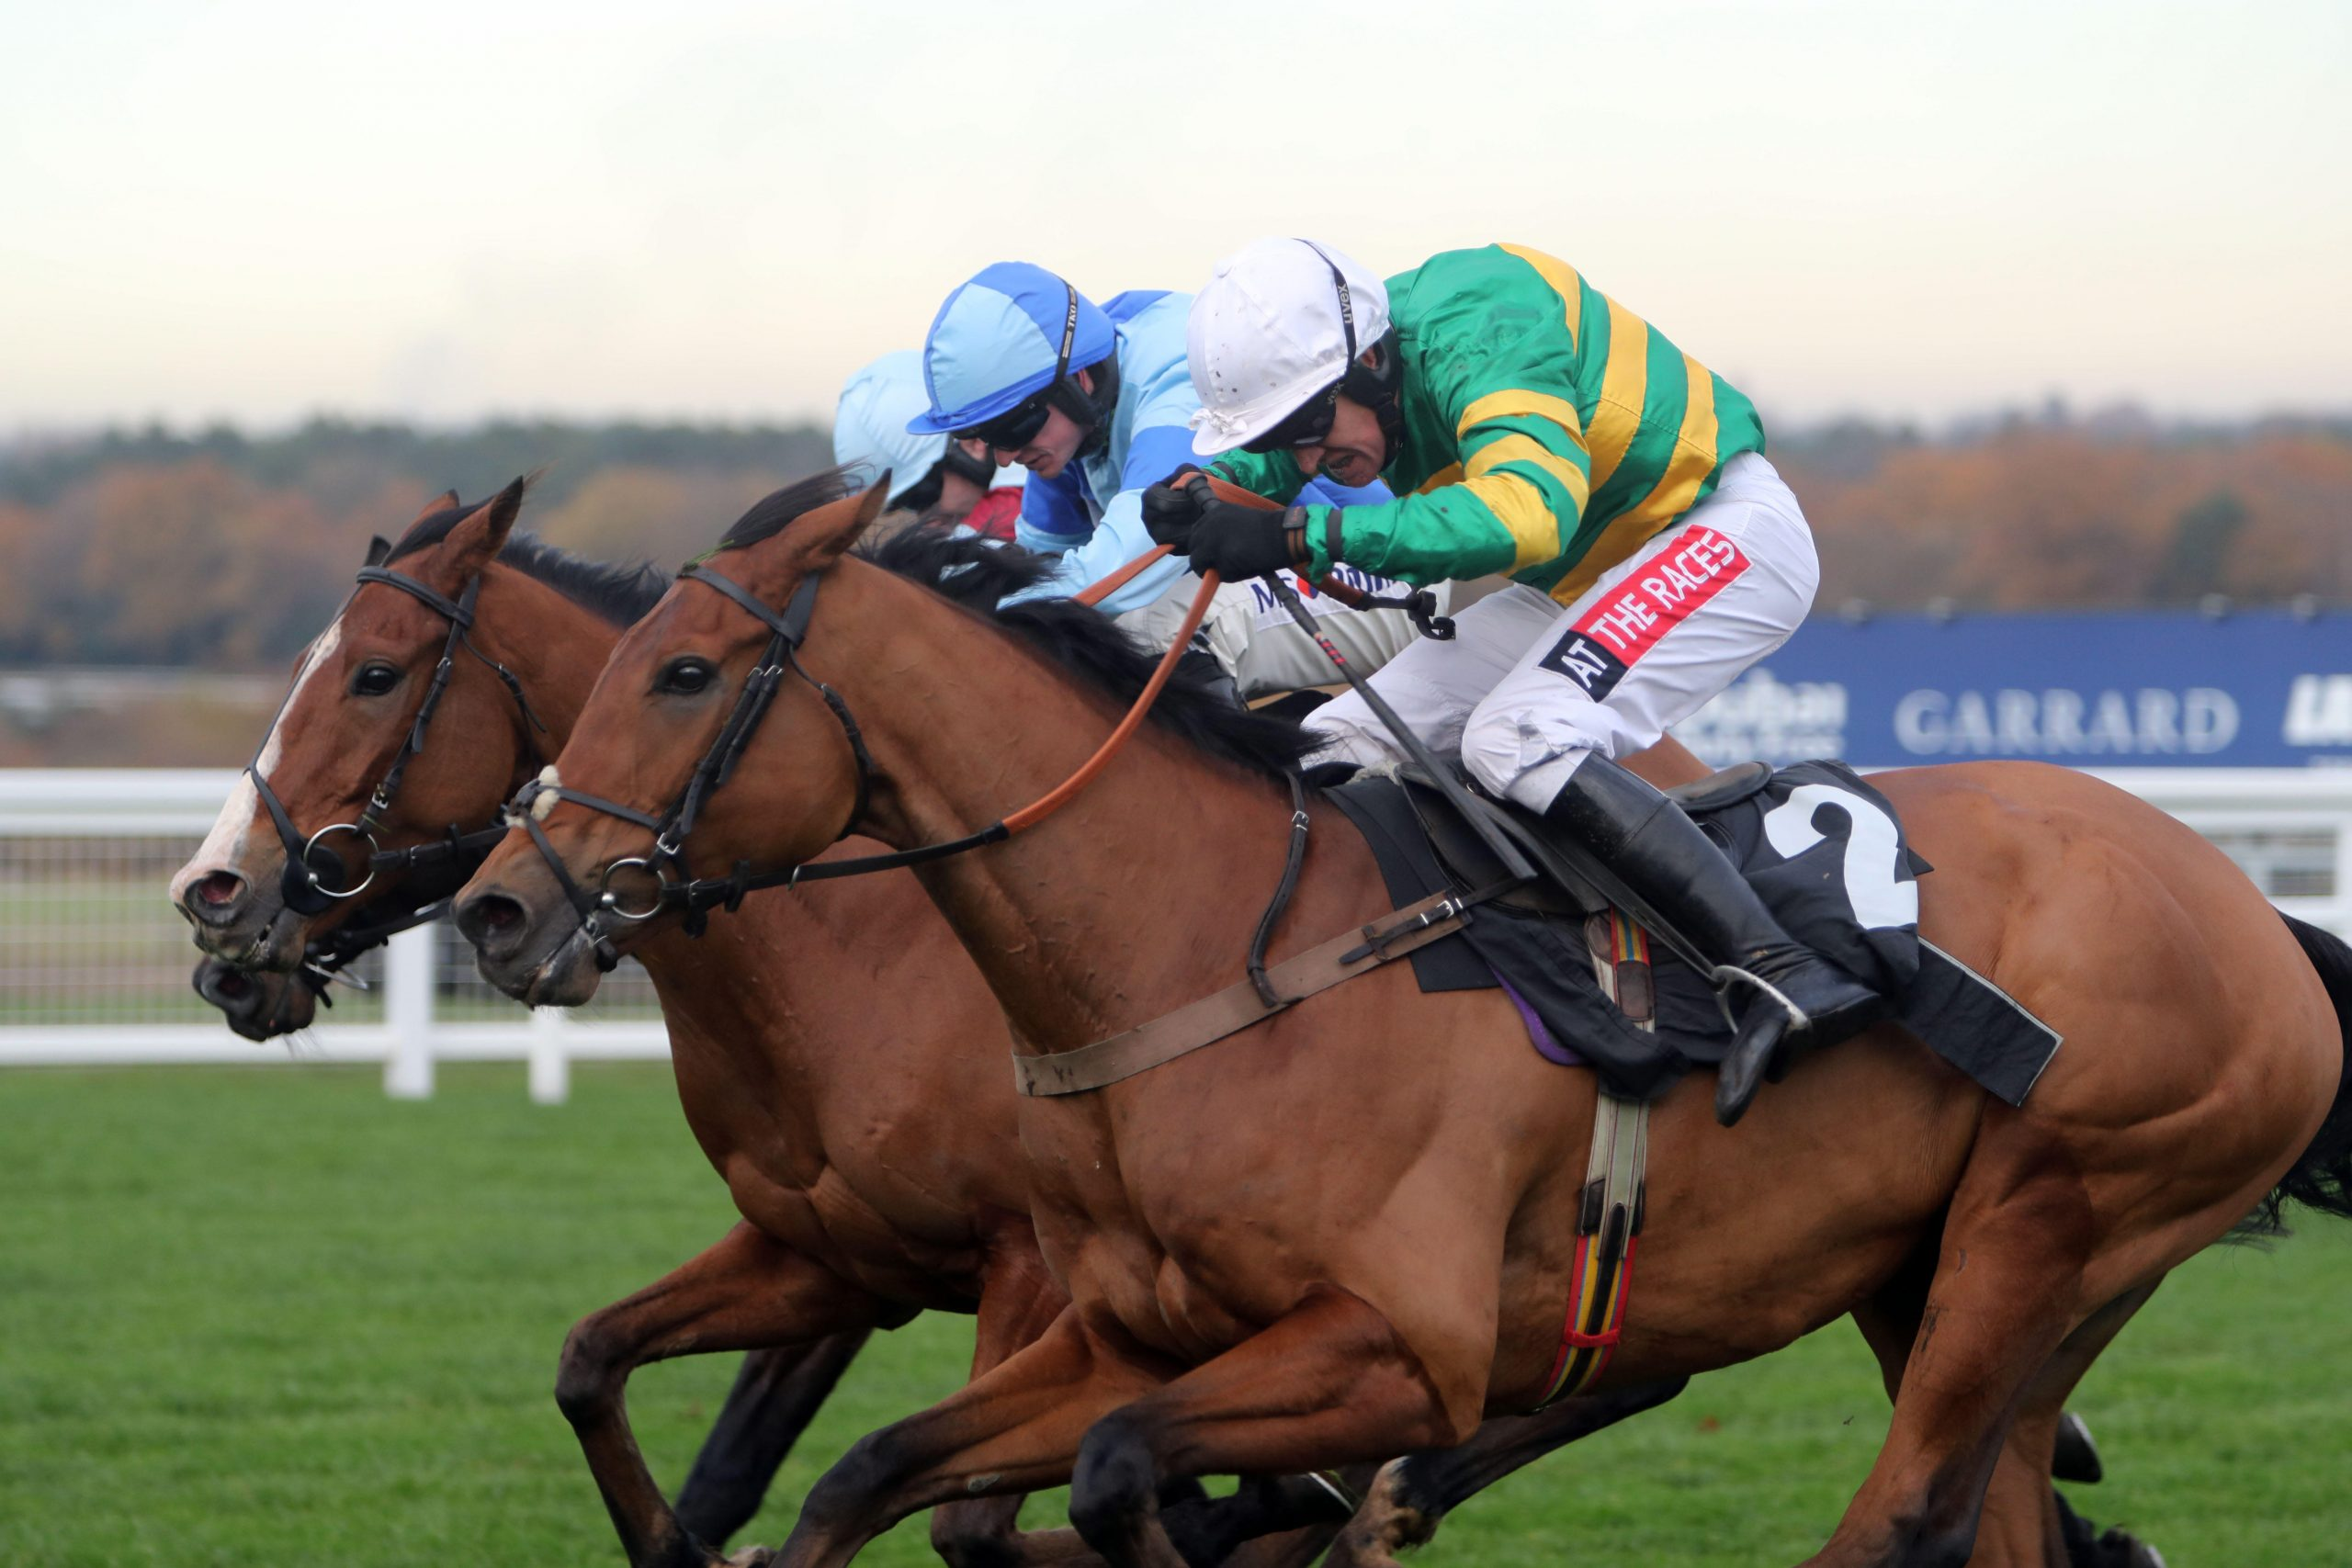 KJJ859 Mr One More ridden by Barry Geraghty go on to win the David Brownlow Charitable Foundation 'Introductory' Hurdle at Ascot Racourse.